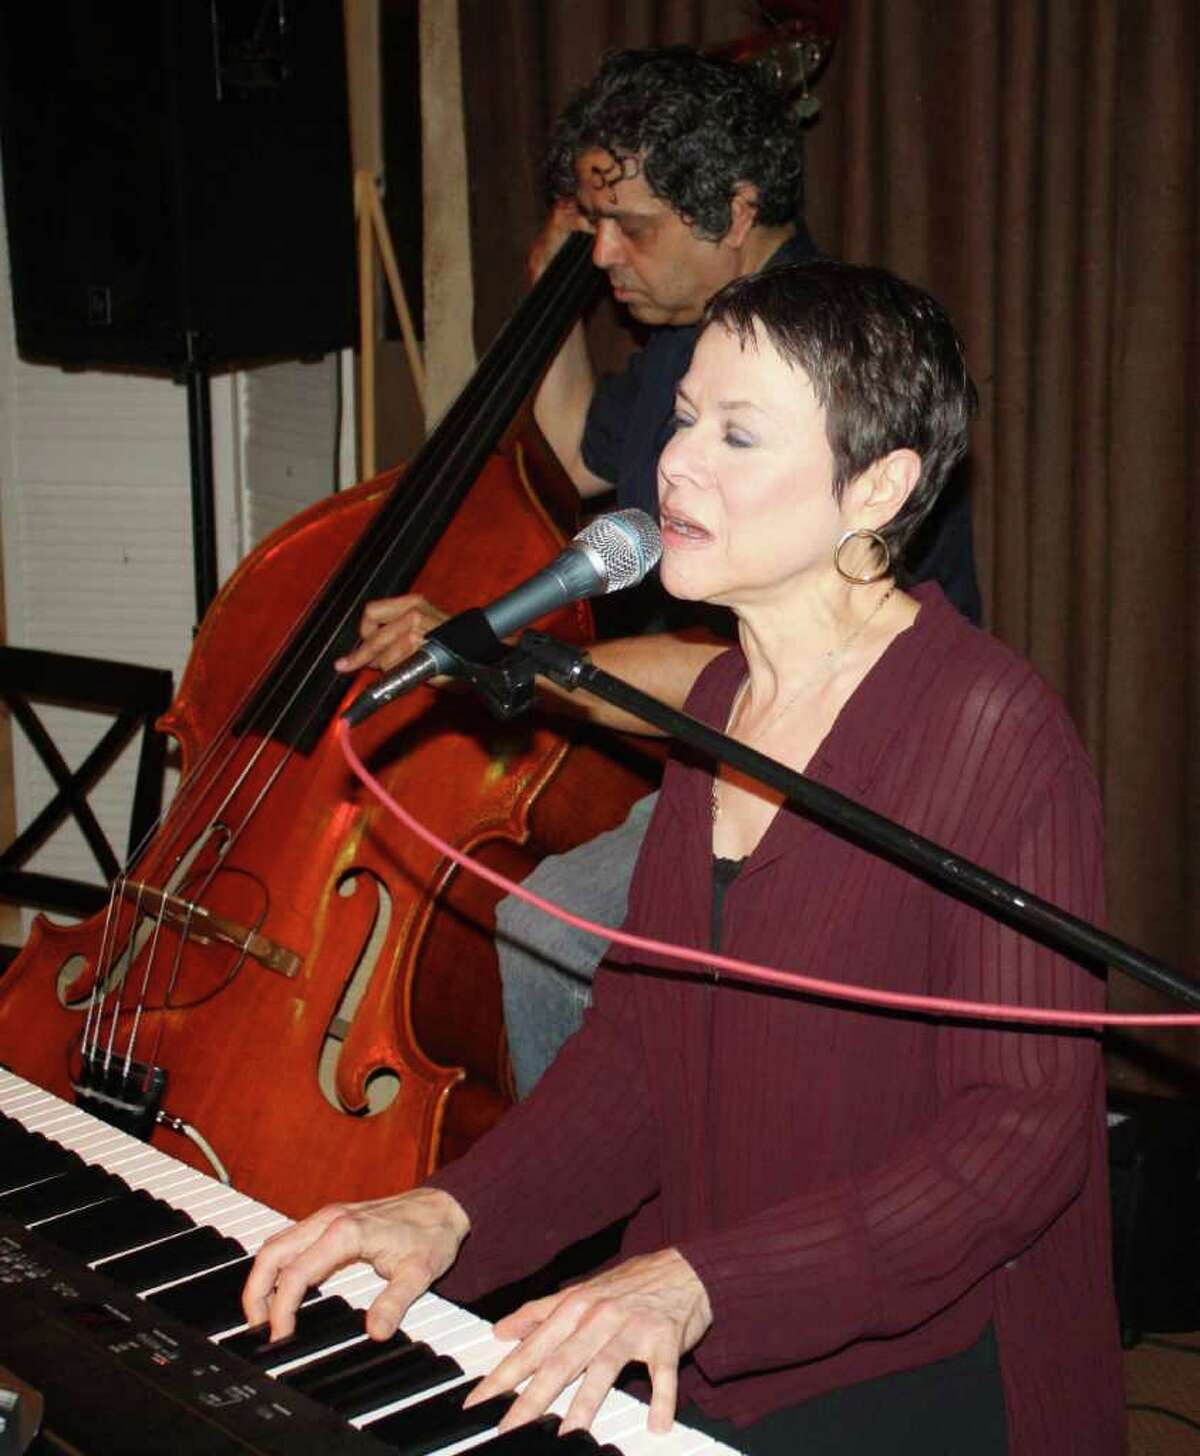 Bett Butler and Joel Dilley bring Alamo City jazz to the South by Southwest festival.